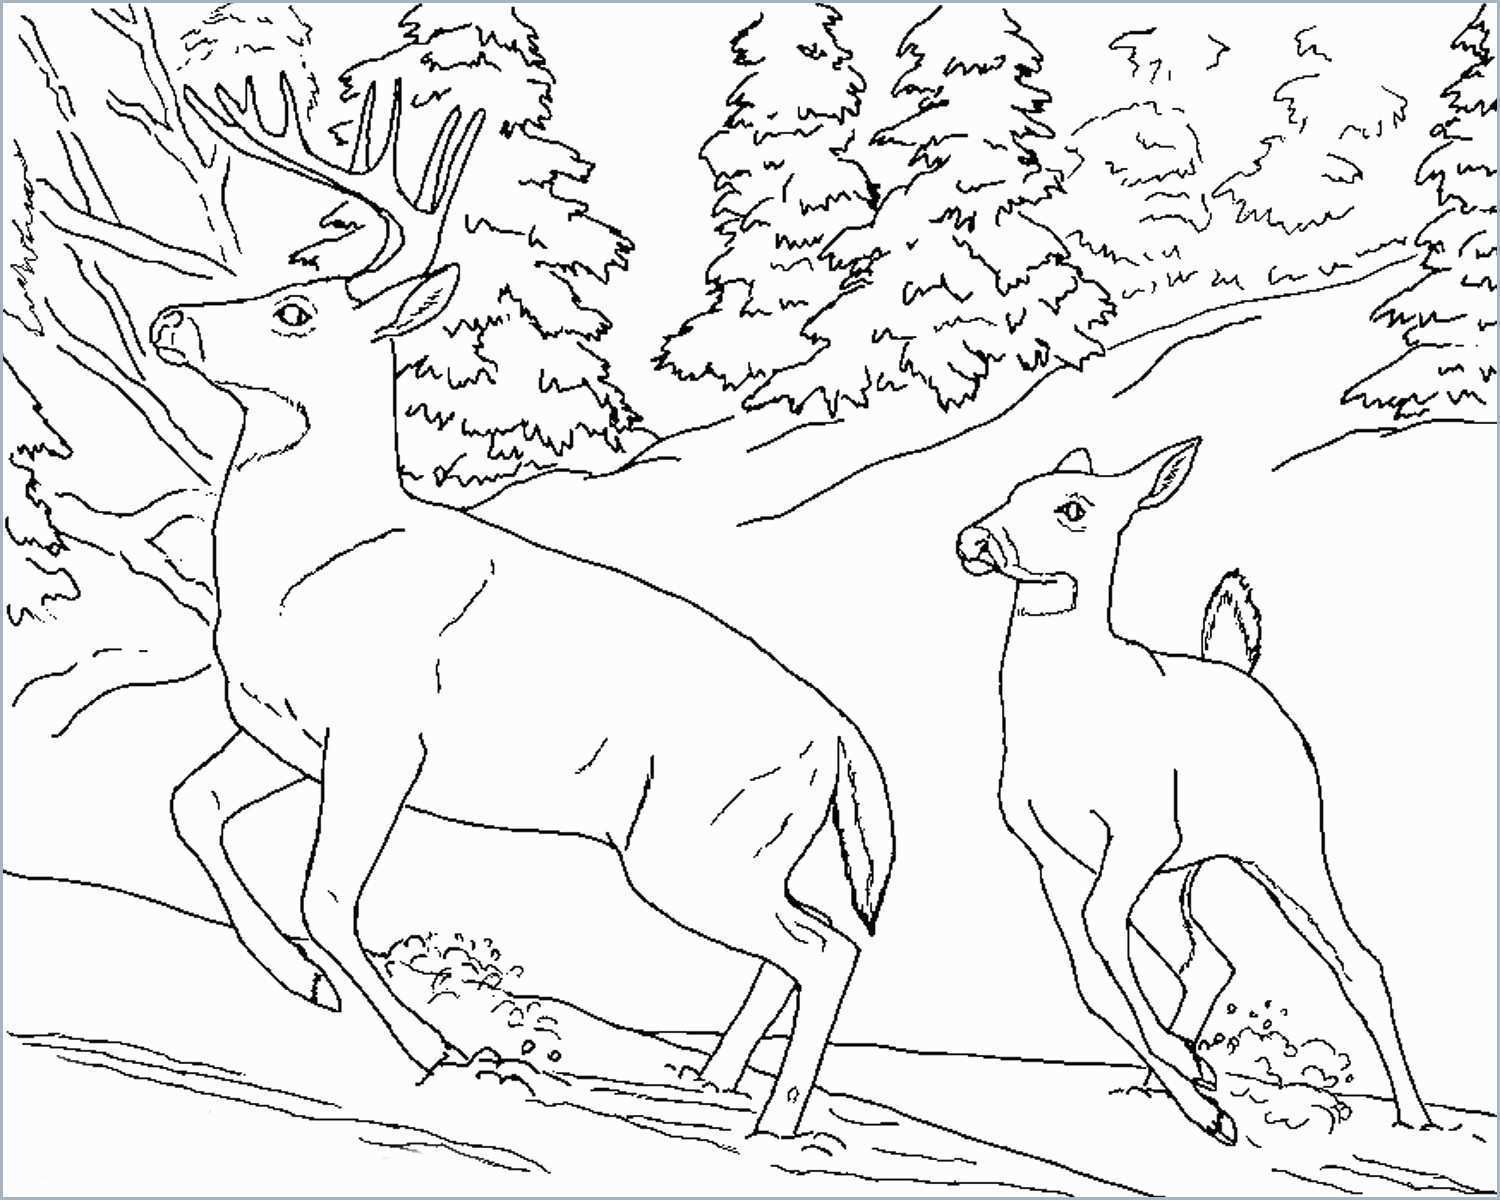 Coloring Pages : Amazing Wild Animal Coloring Sheets Pages Book - Free Printable Wild Animal Coloring Pages